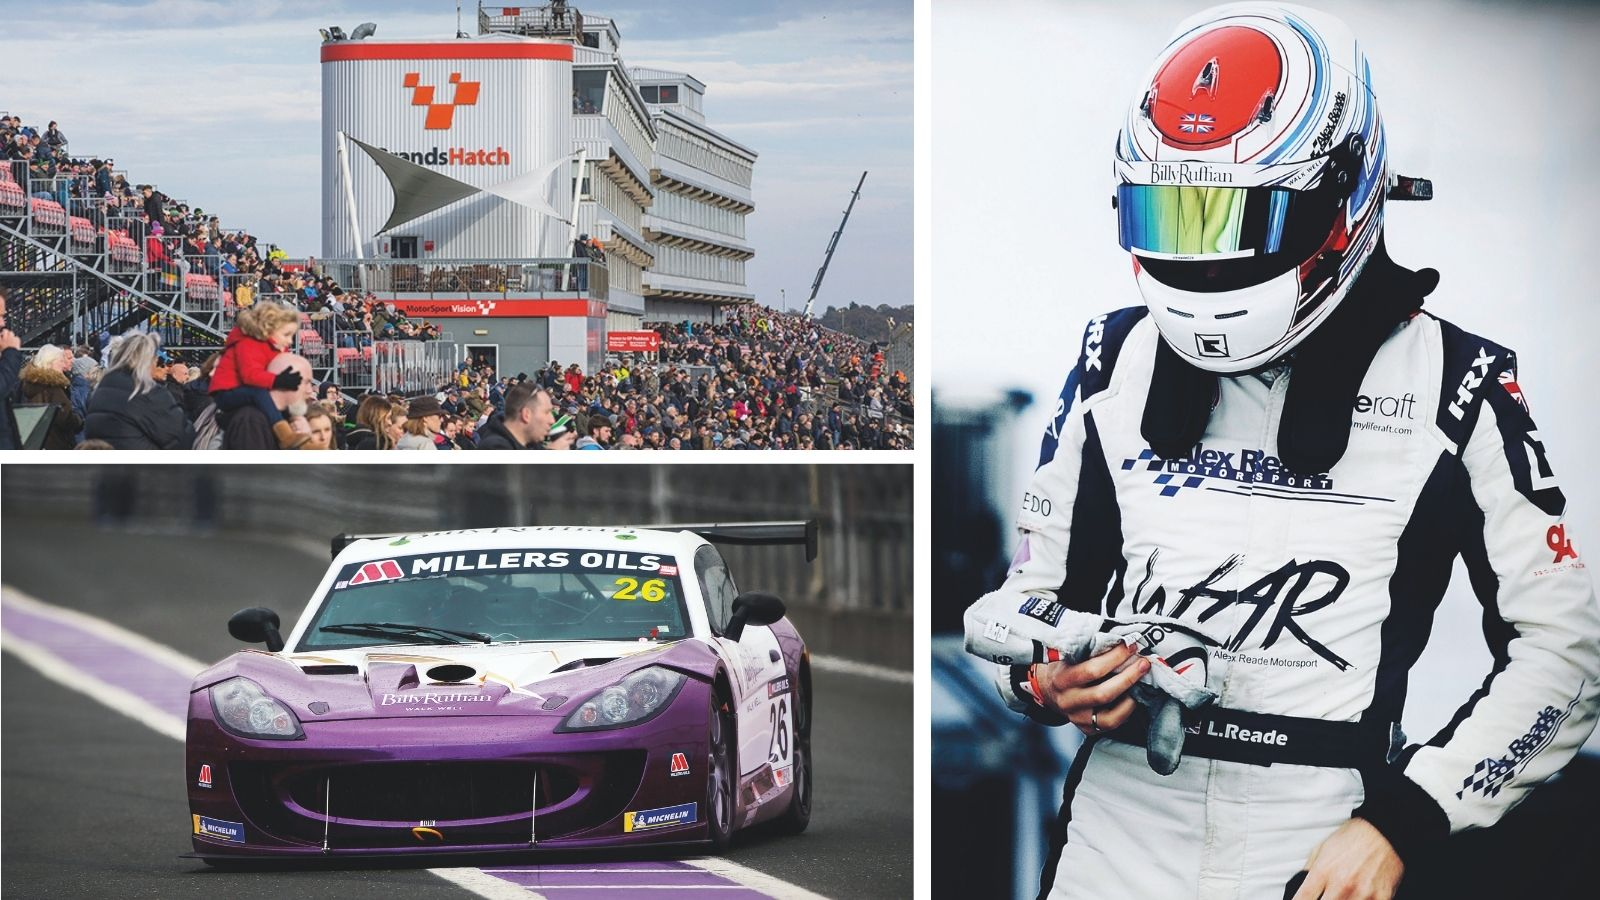 WIN a Brands Hatch Race Day Experience